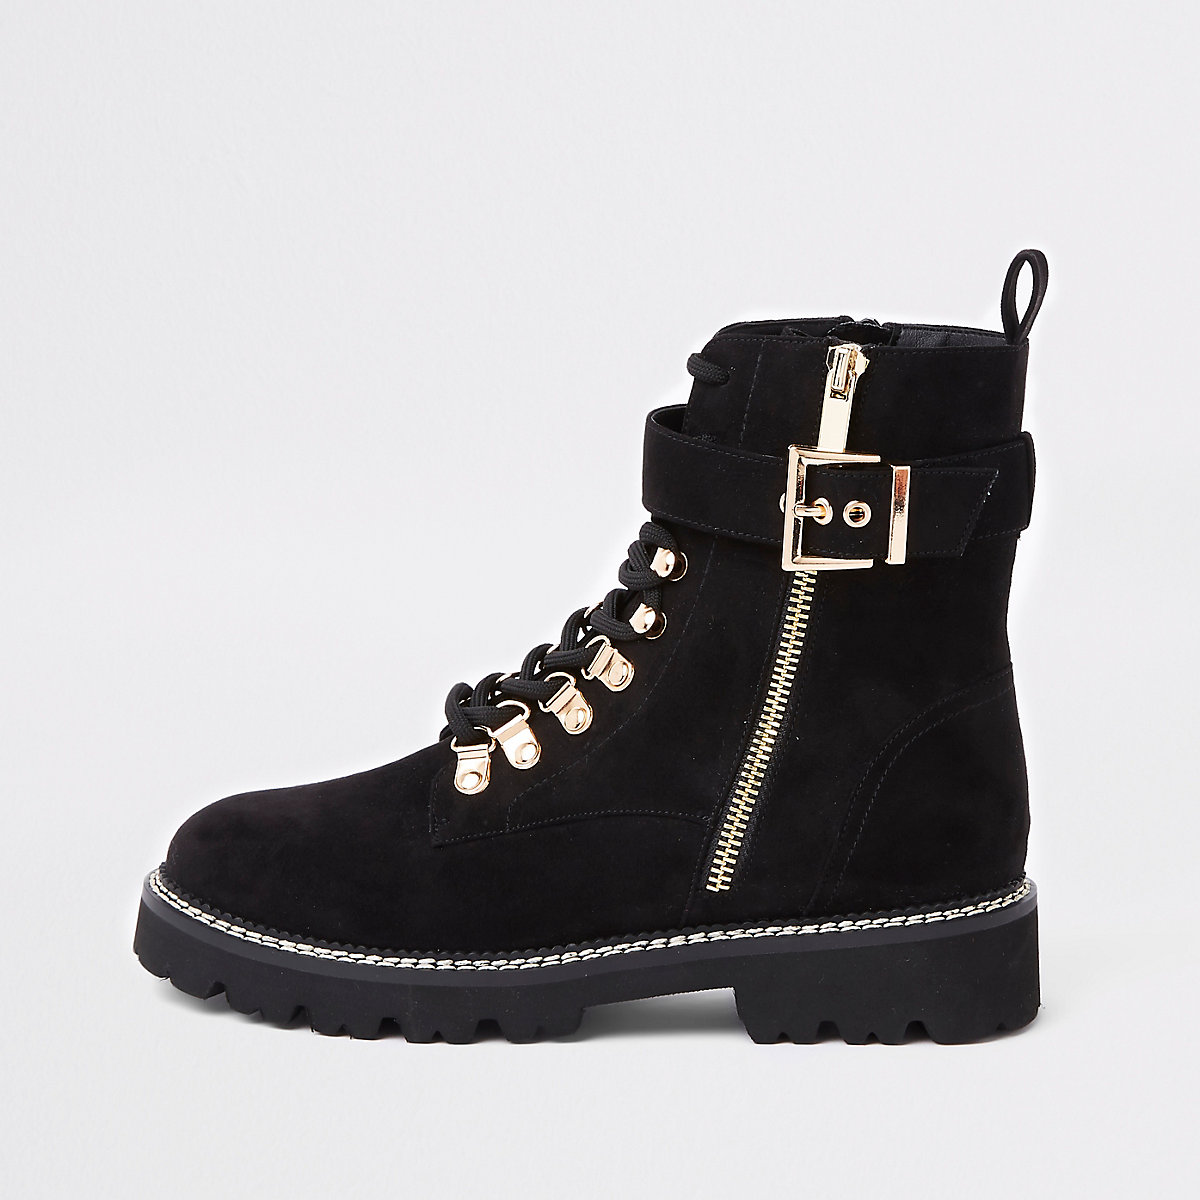 Black buckle lace-up ankle boots